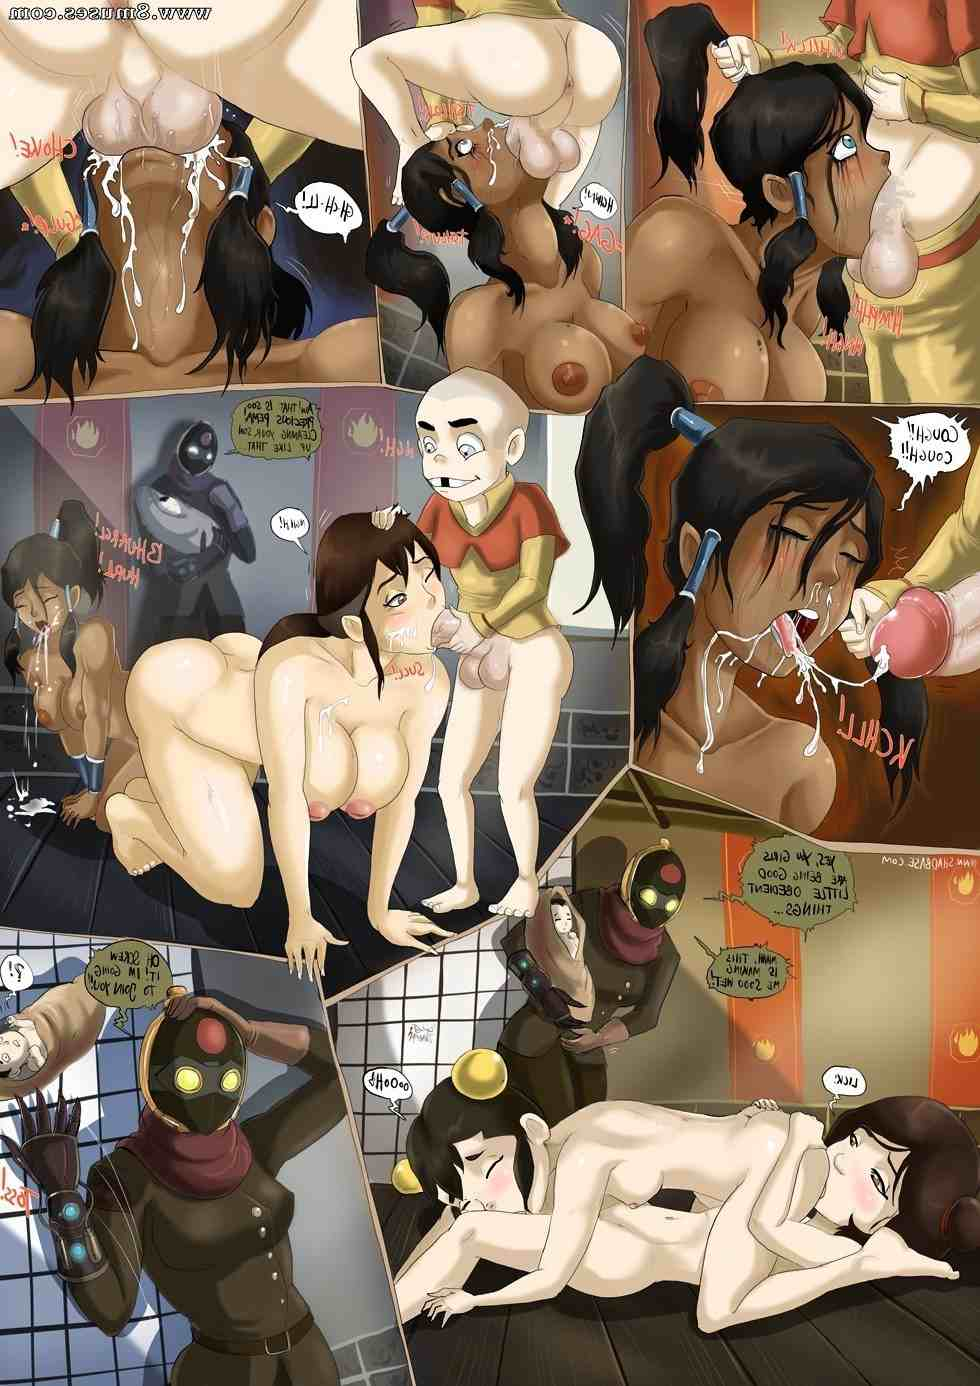 ShadBase-Comics/The-lezzing-of-korra The_lezzing_of_korra__8muses_-_Sex_and_Porn_Comics_7.jpg